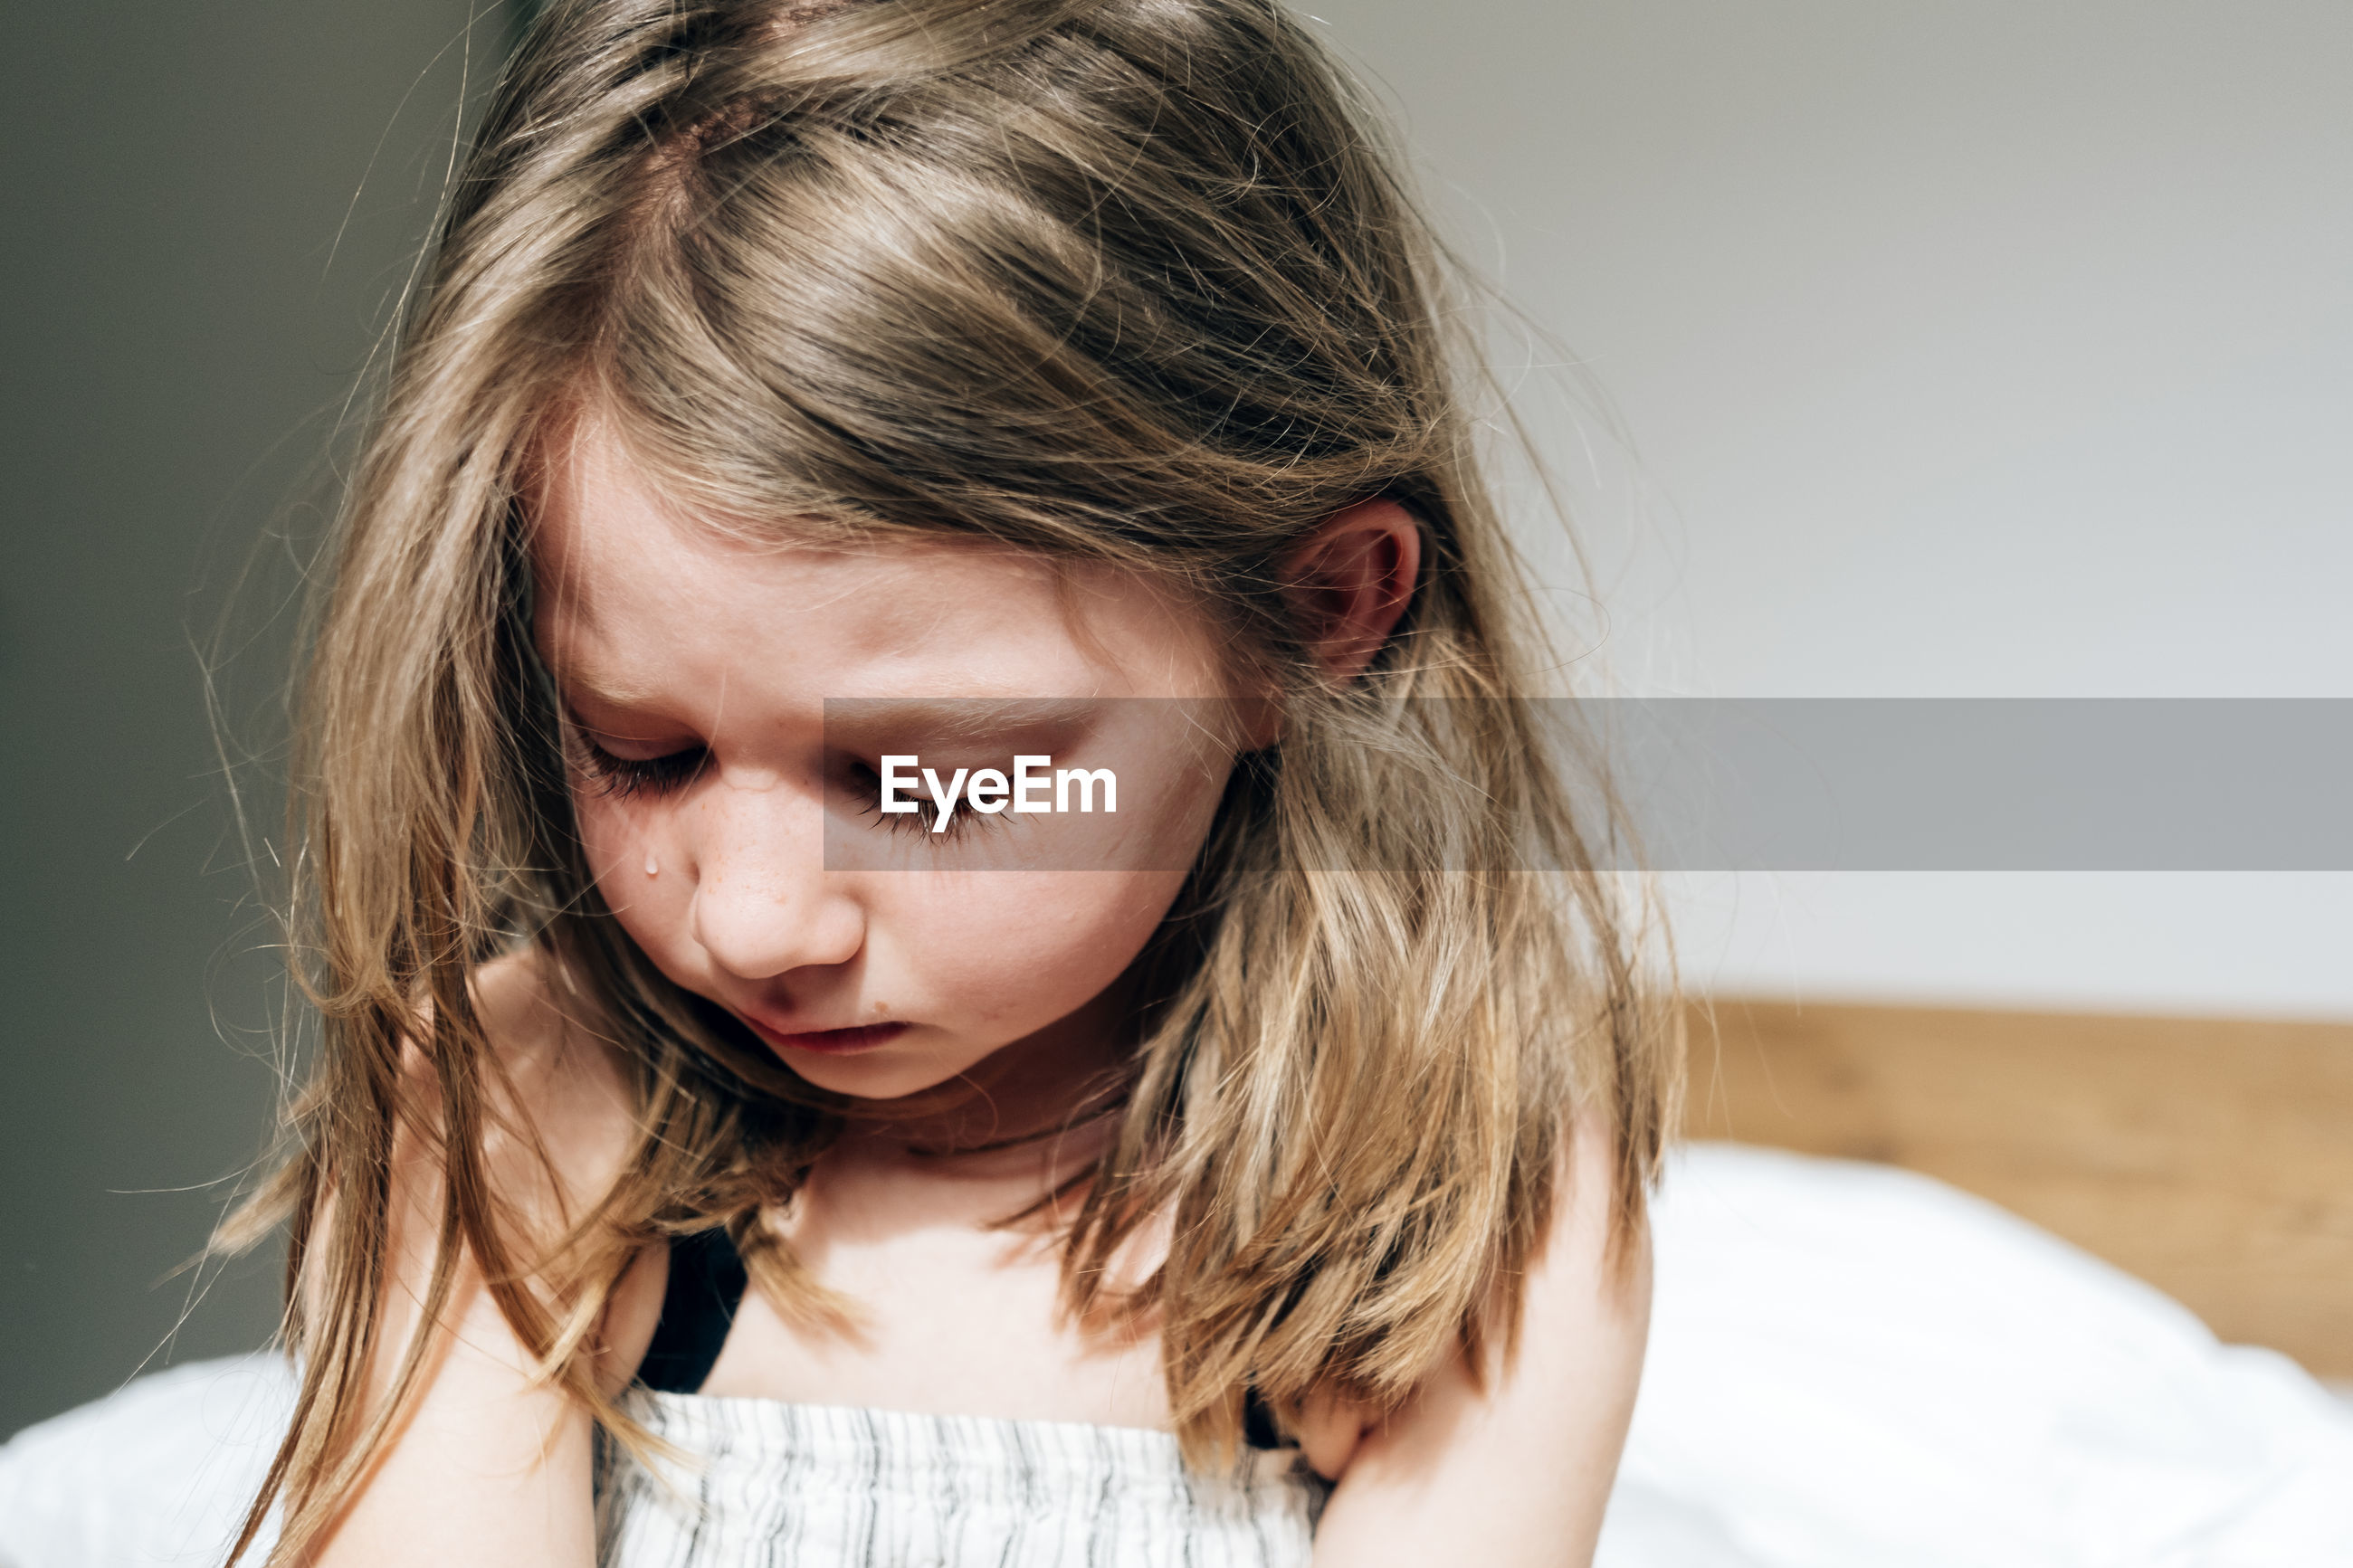 Close up portrait of a little girl at home crying sadly - lockdown sadness concept